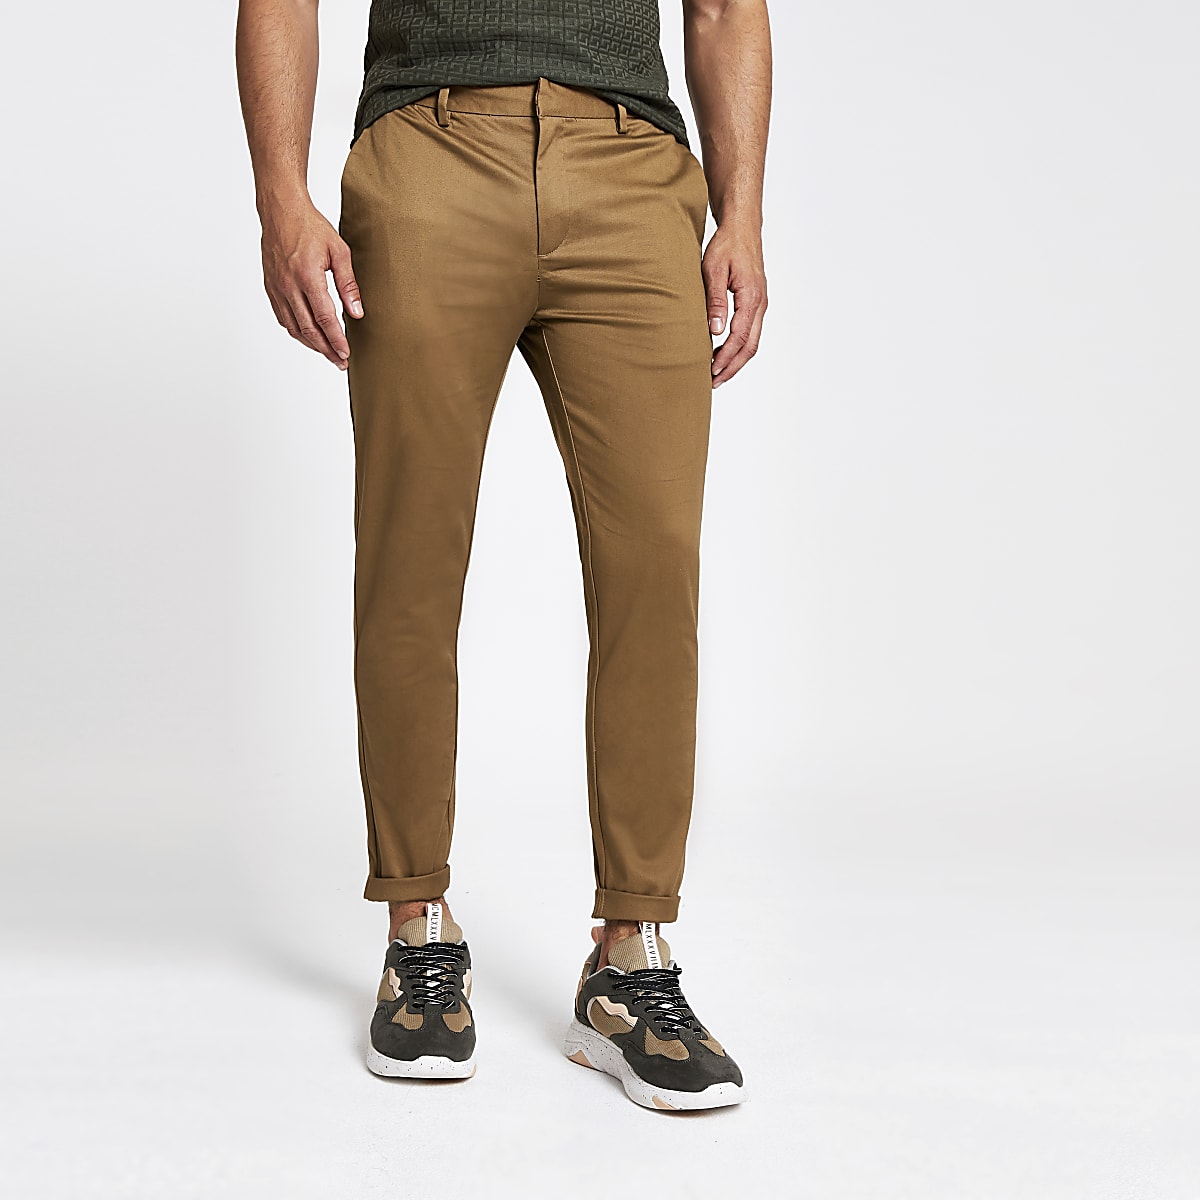 Light brown skinny fit cropped chino pants